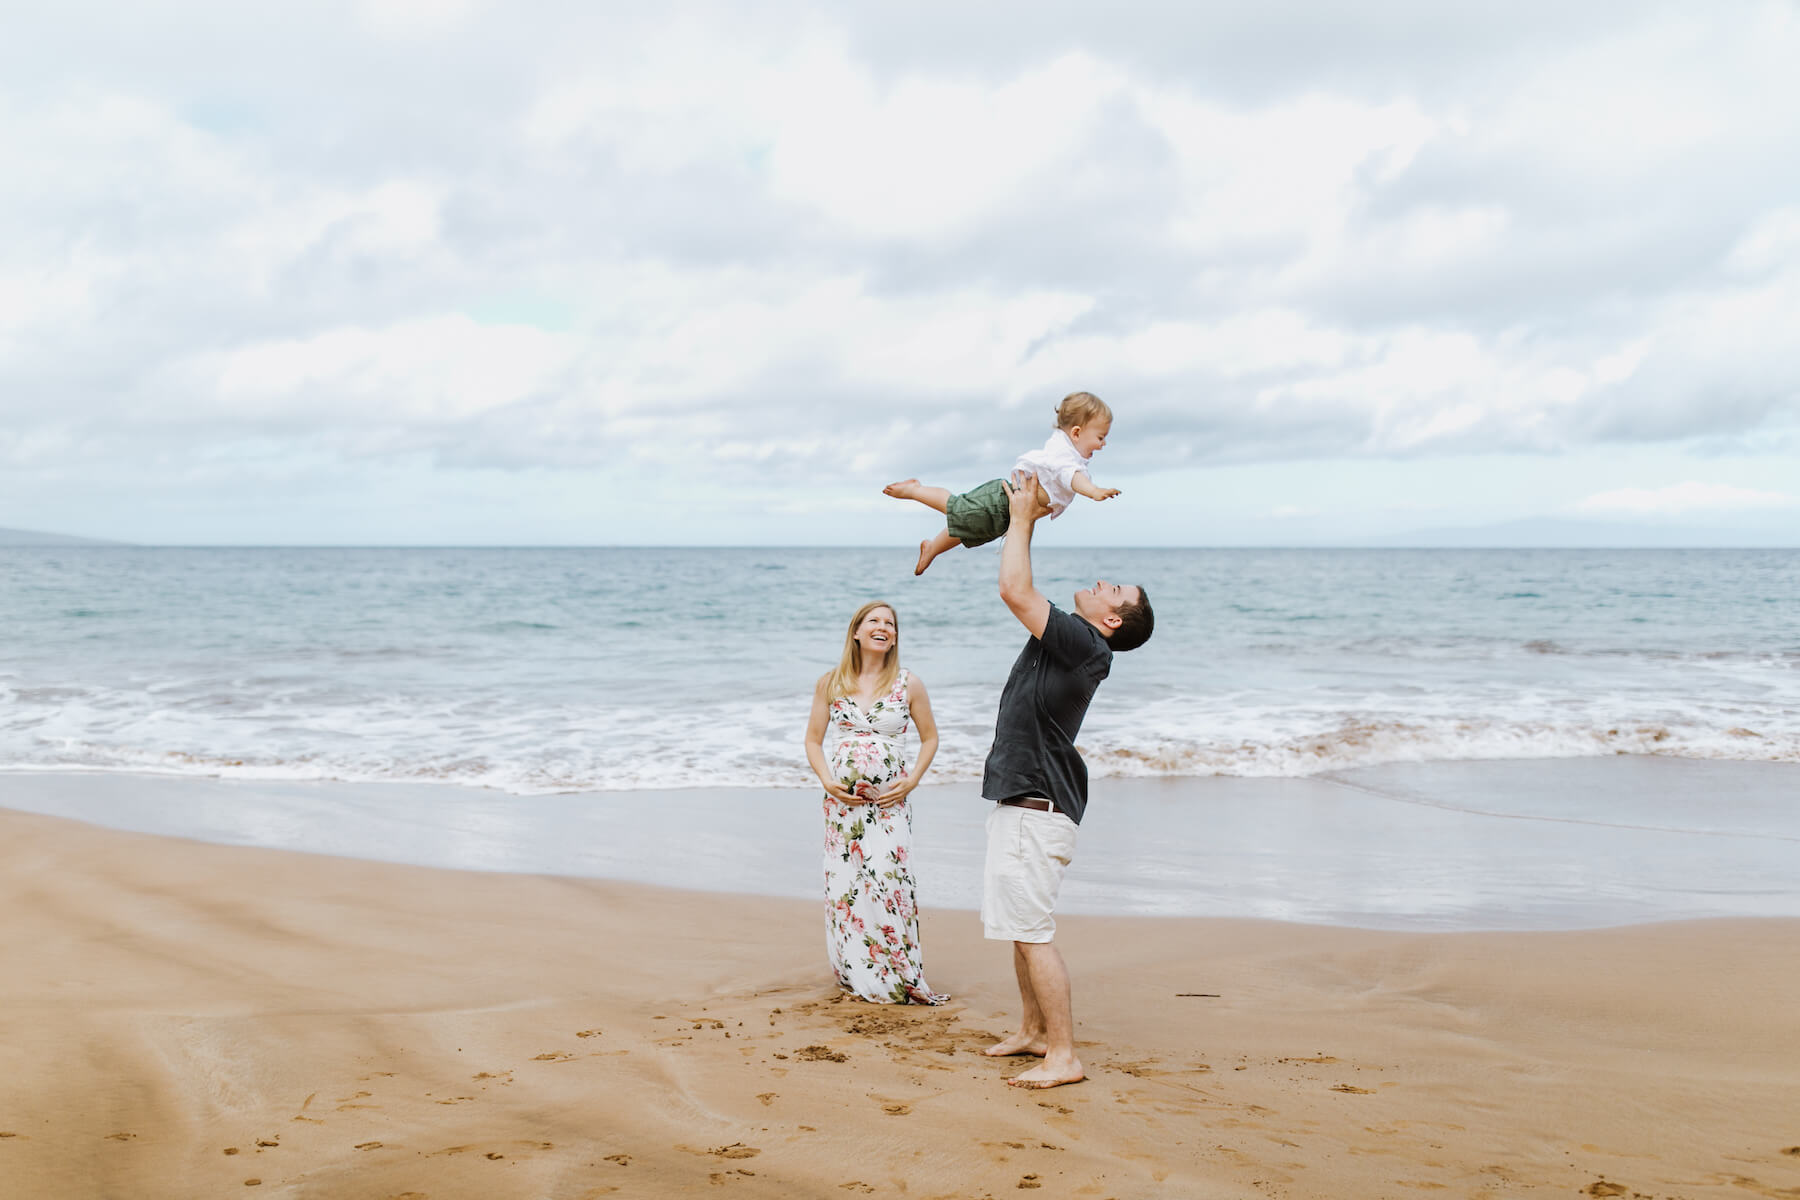 family on the shoreline waves together in Maui, USA